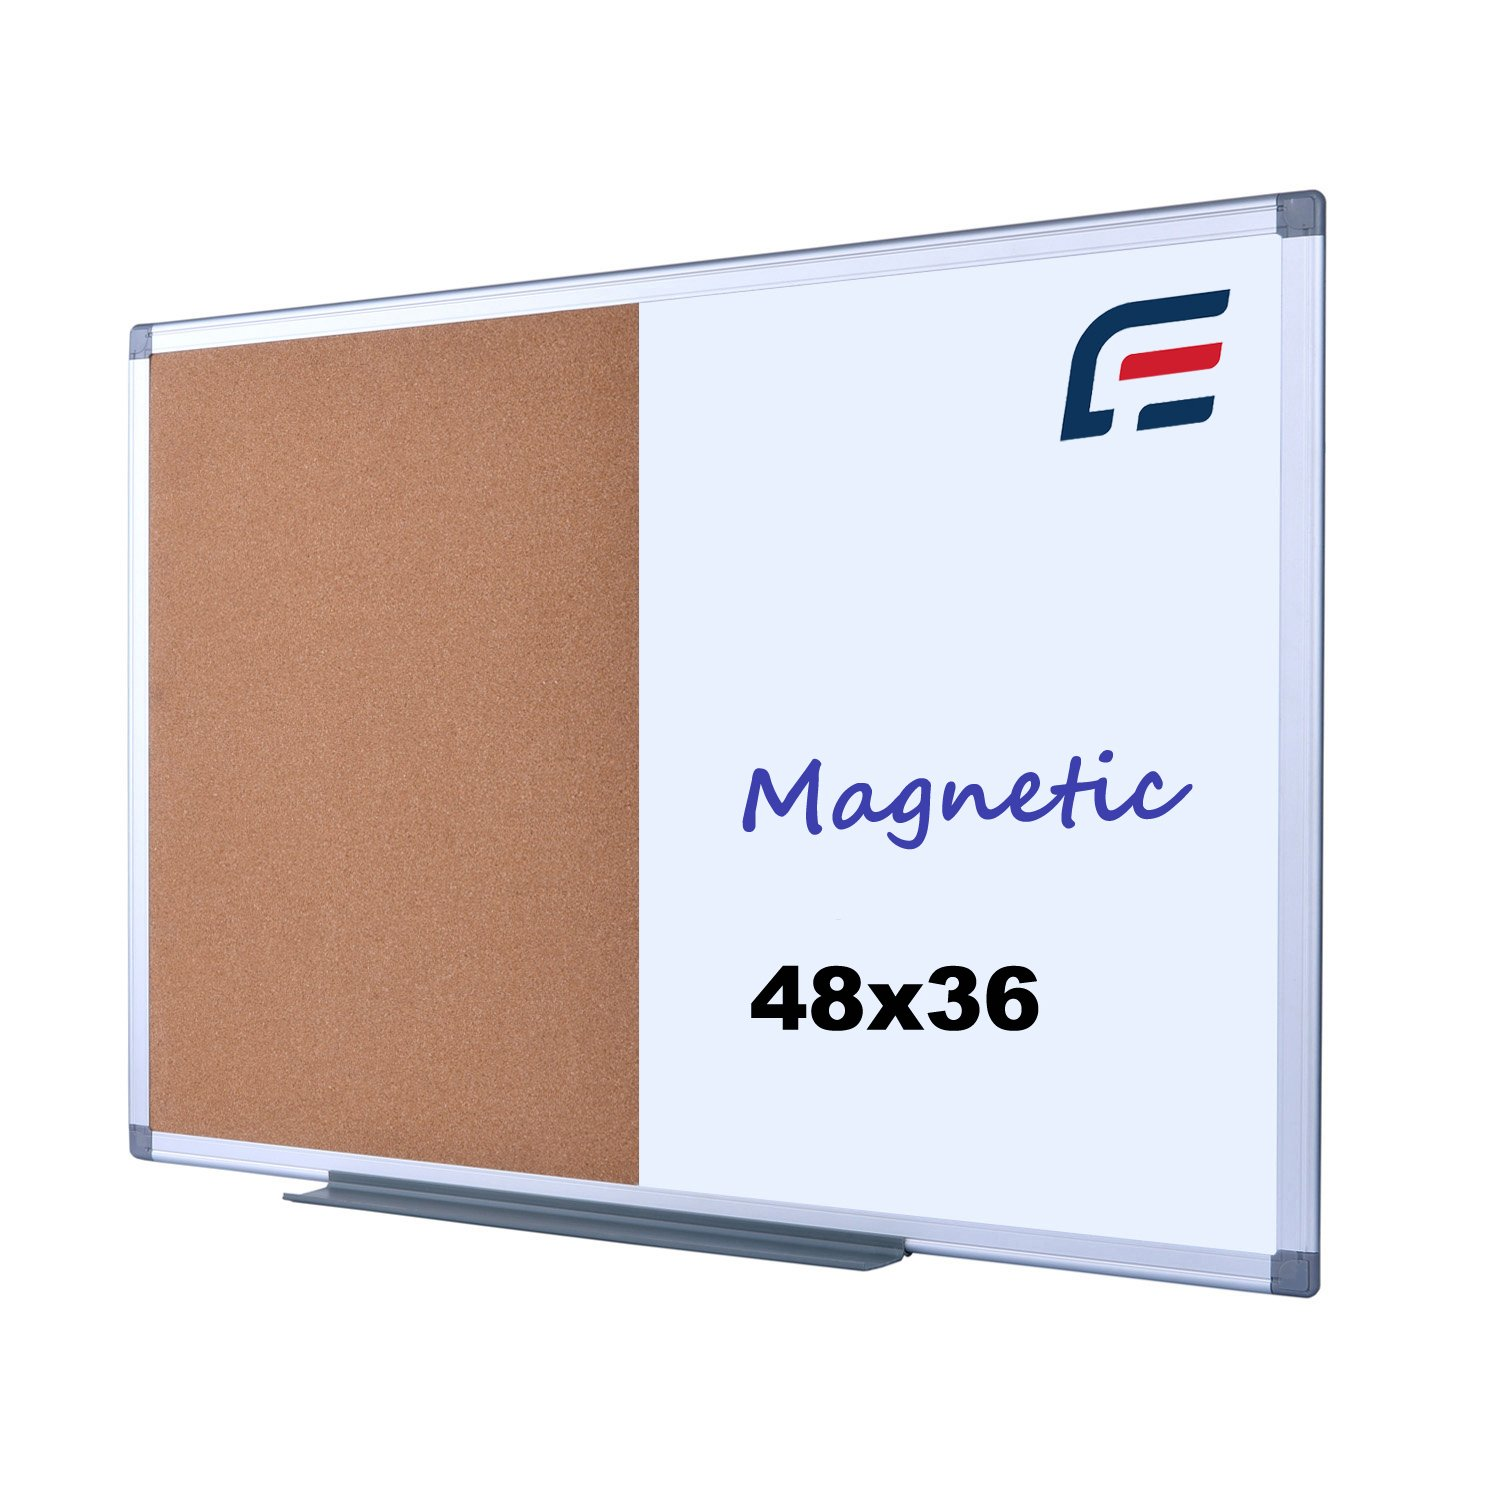 EFIRNITURE Magnetic Erase Board & Cork Board Combination, 48x36 Inch Aluminum Frame Wall Mounted Combination Board with Removable Marker Tray